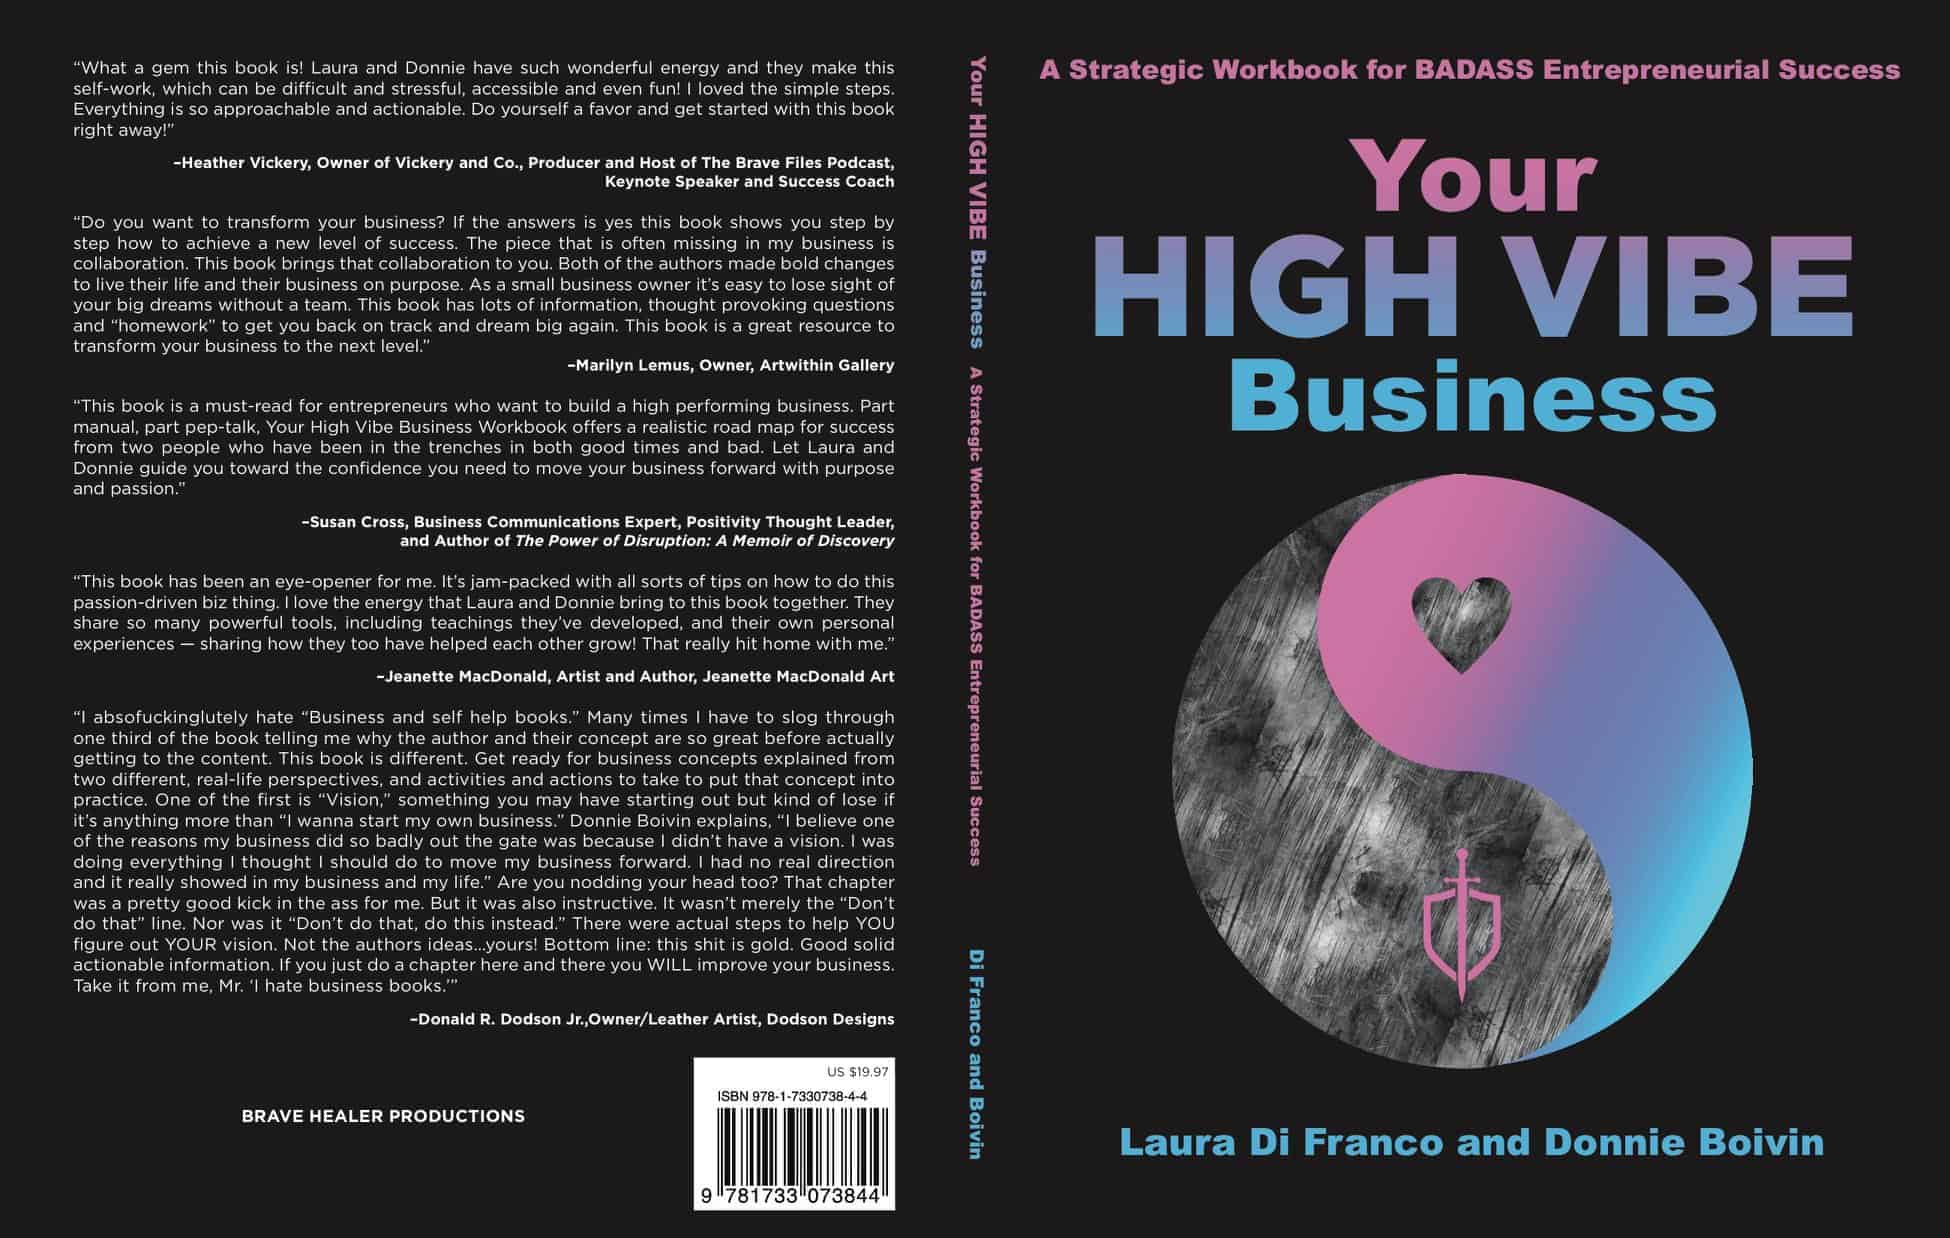 This book will change your business. The eBook is $4.99 (but have your notebook and pen ready! If yo